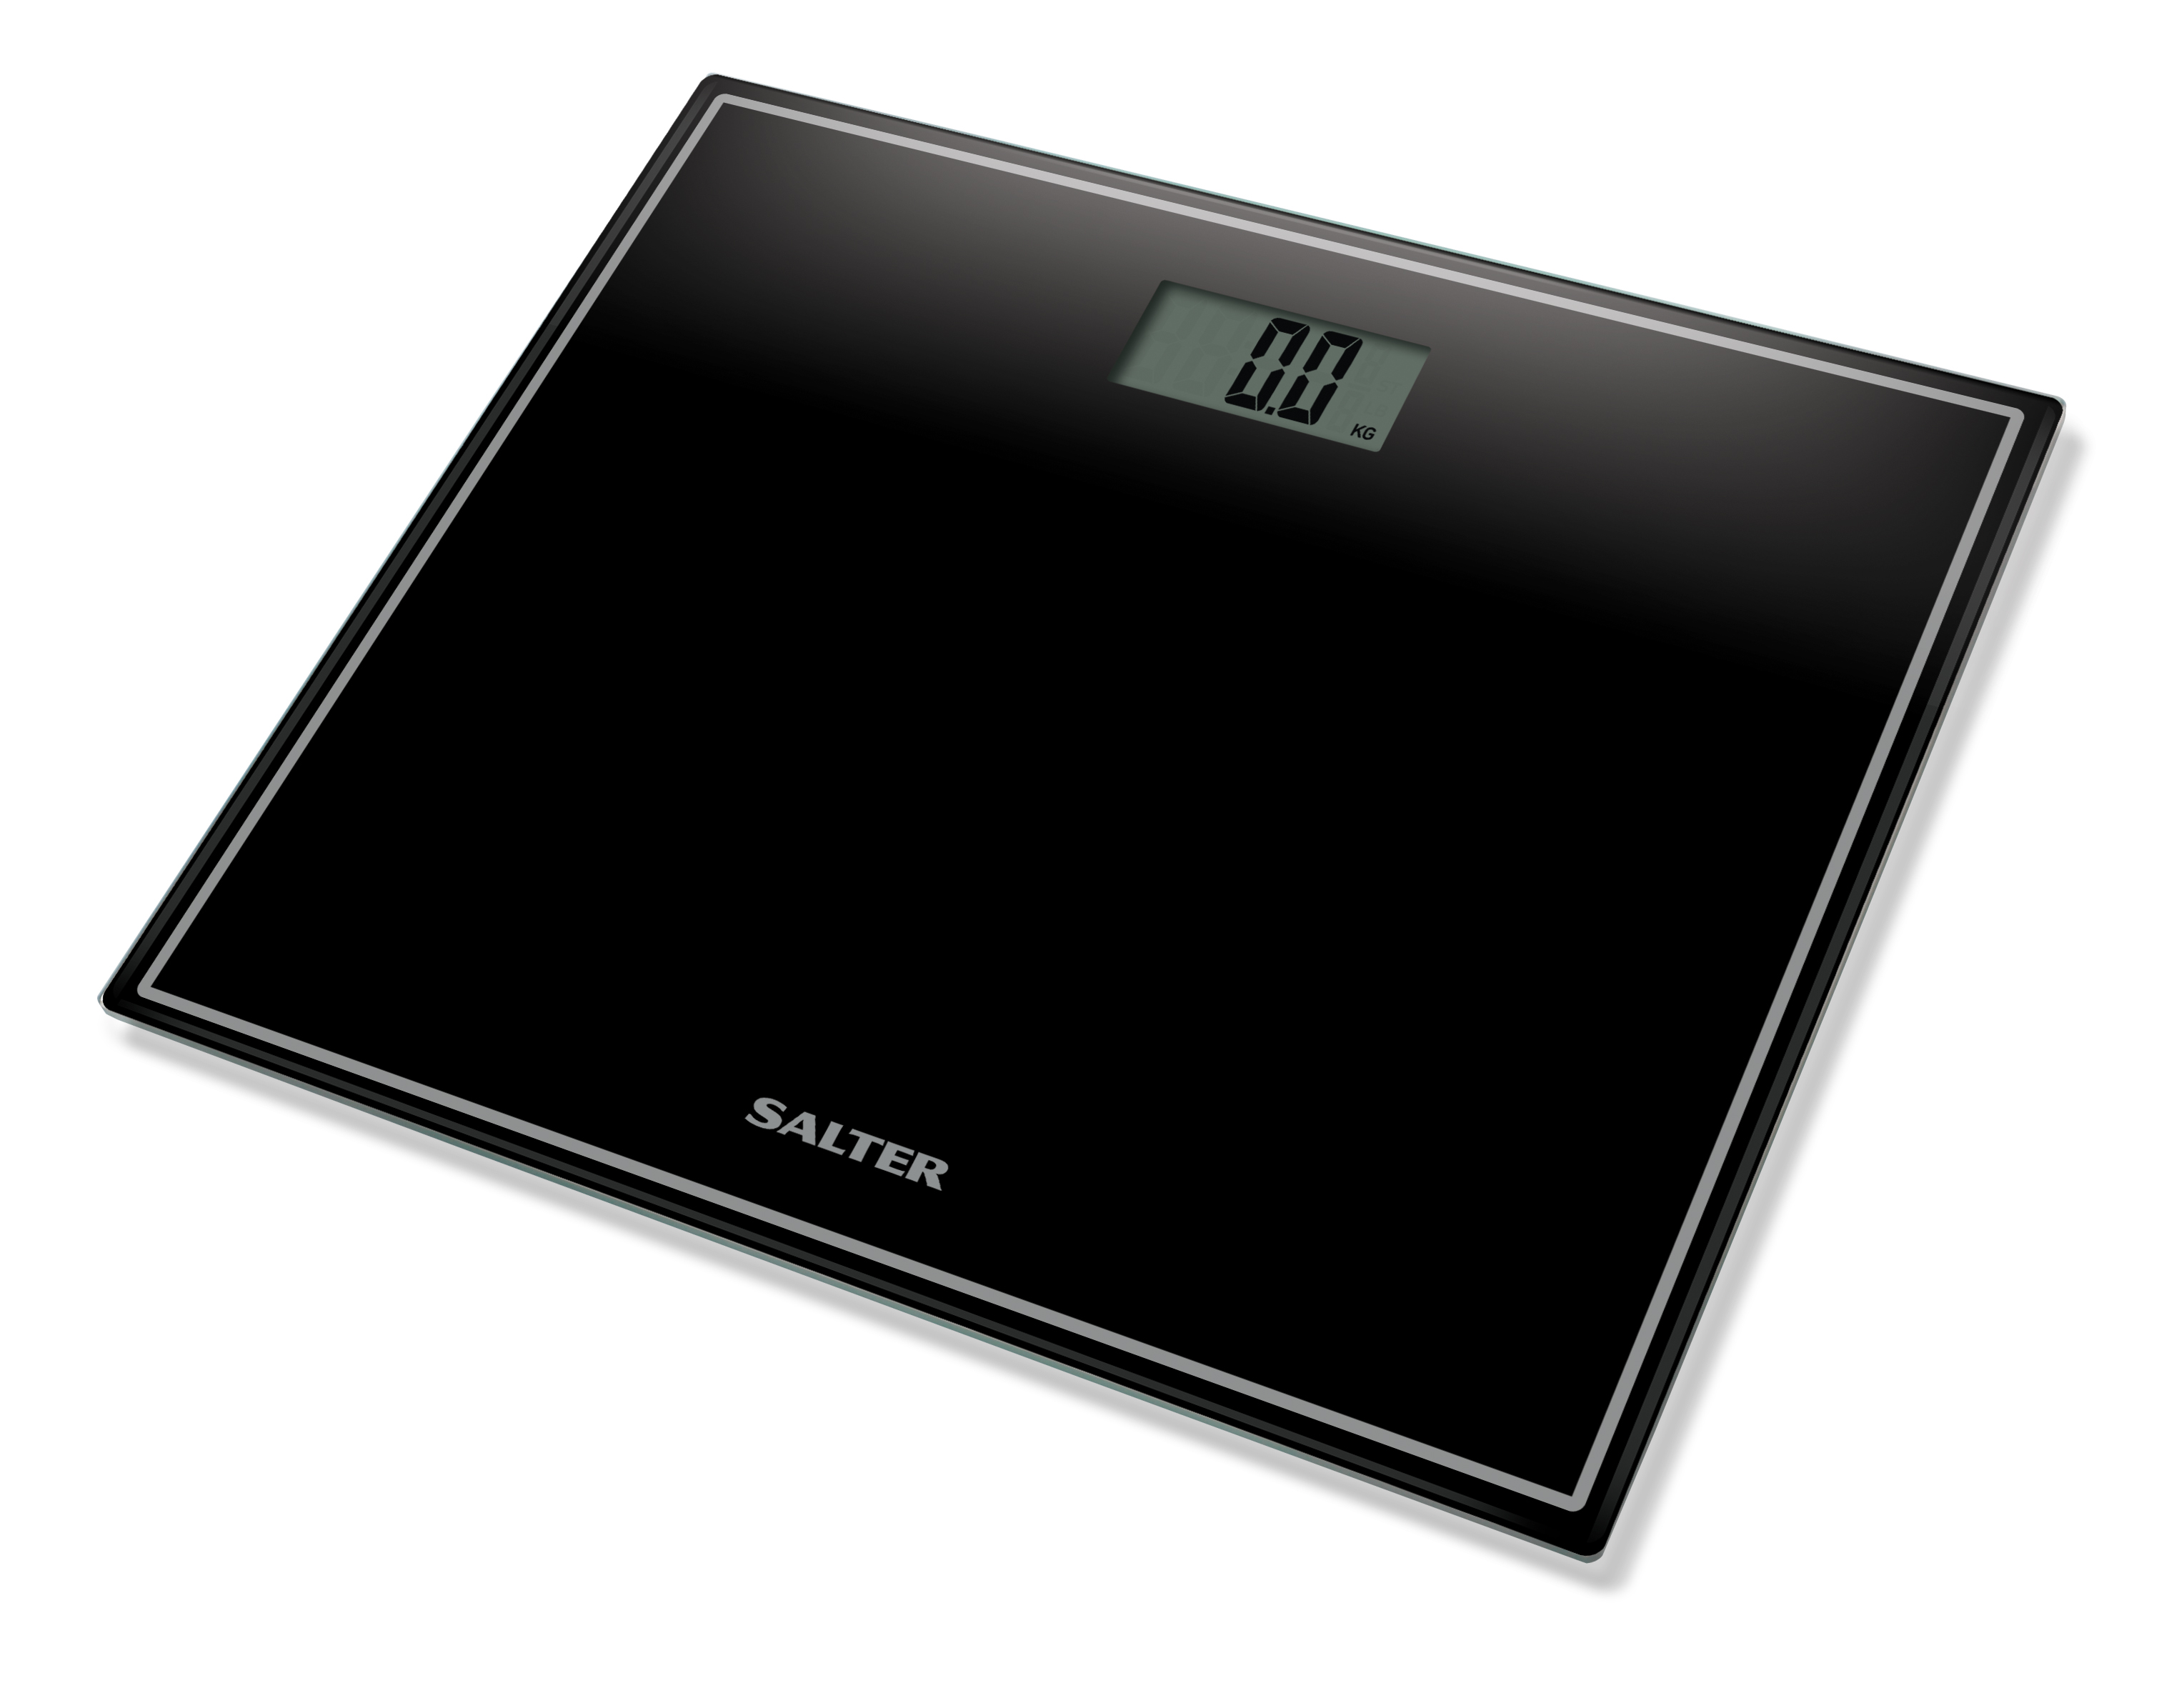 Salter Compact Glass Electronic Personal Scale 9207BK3R